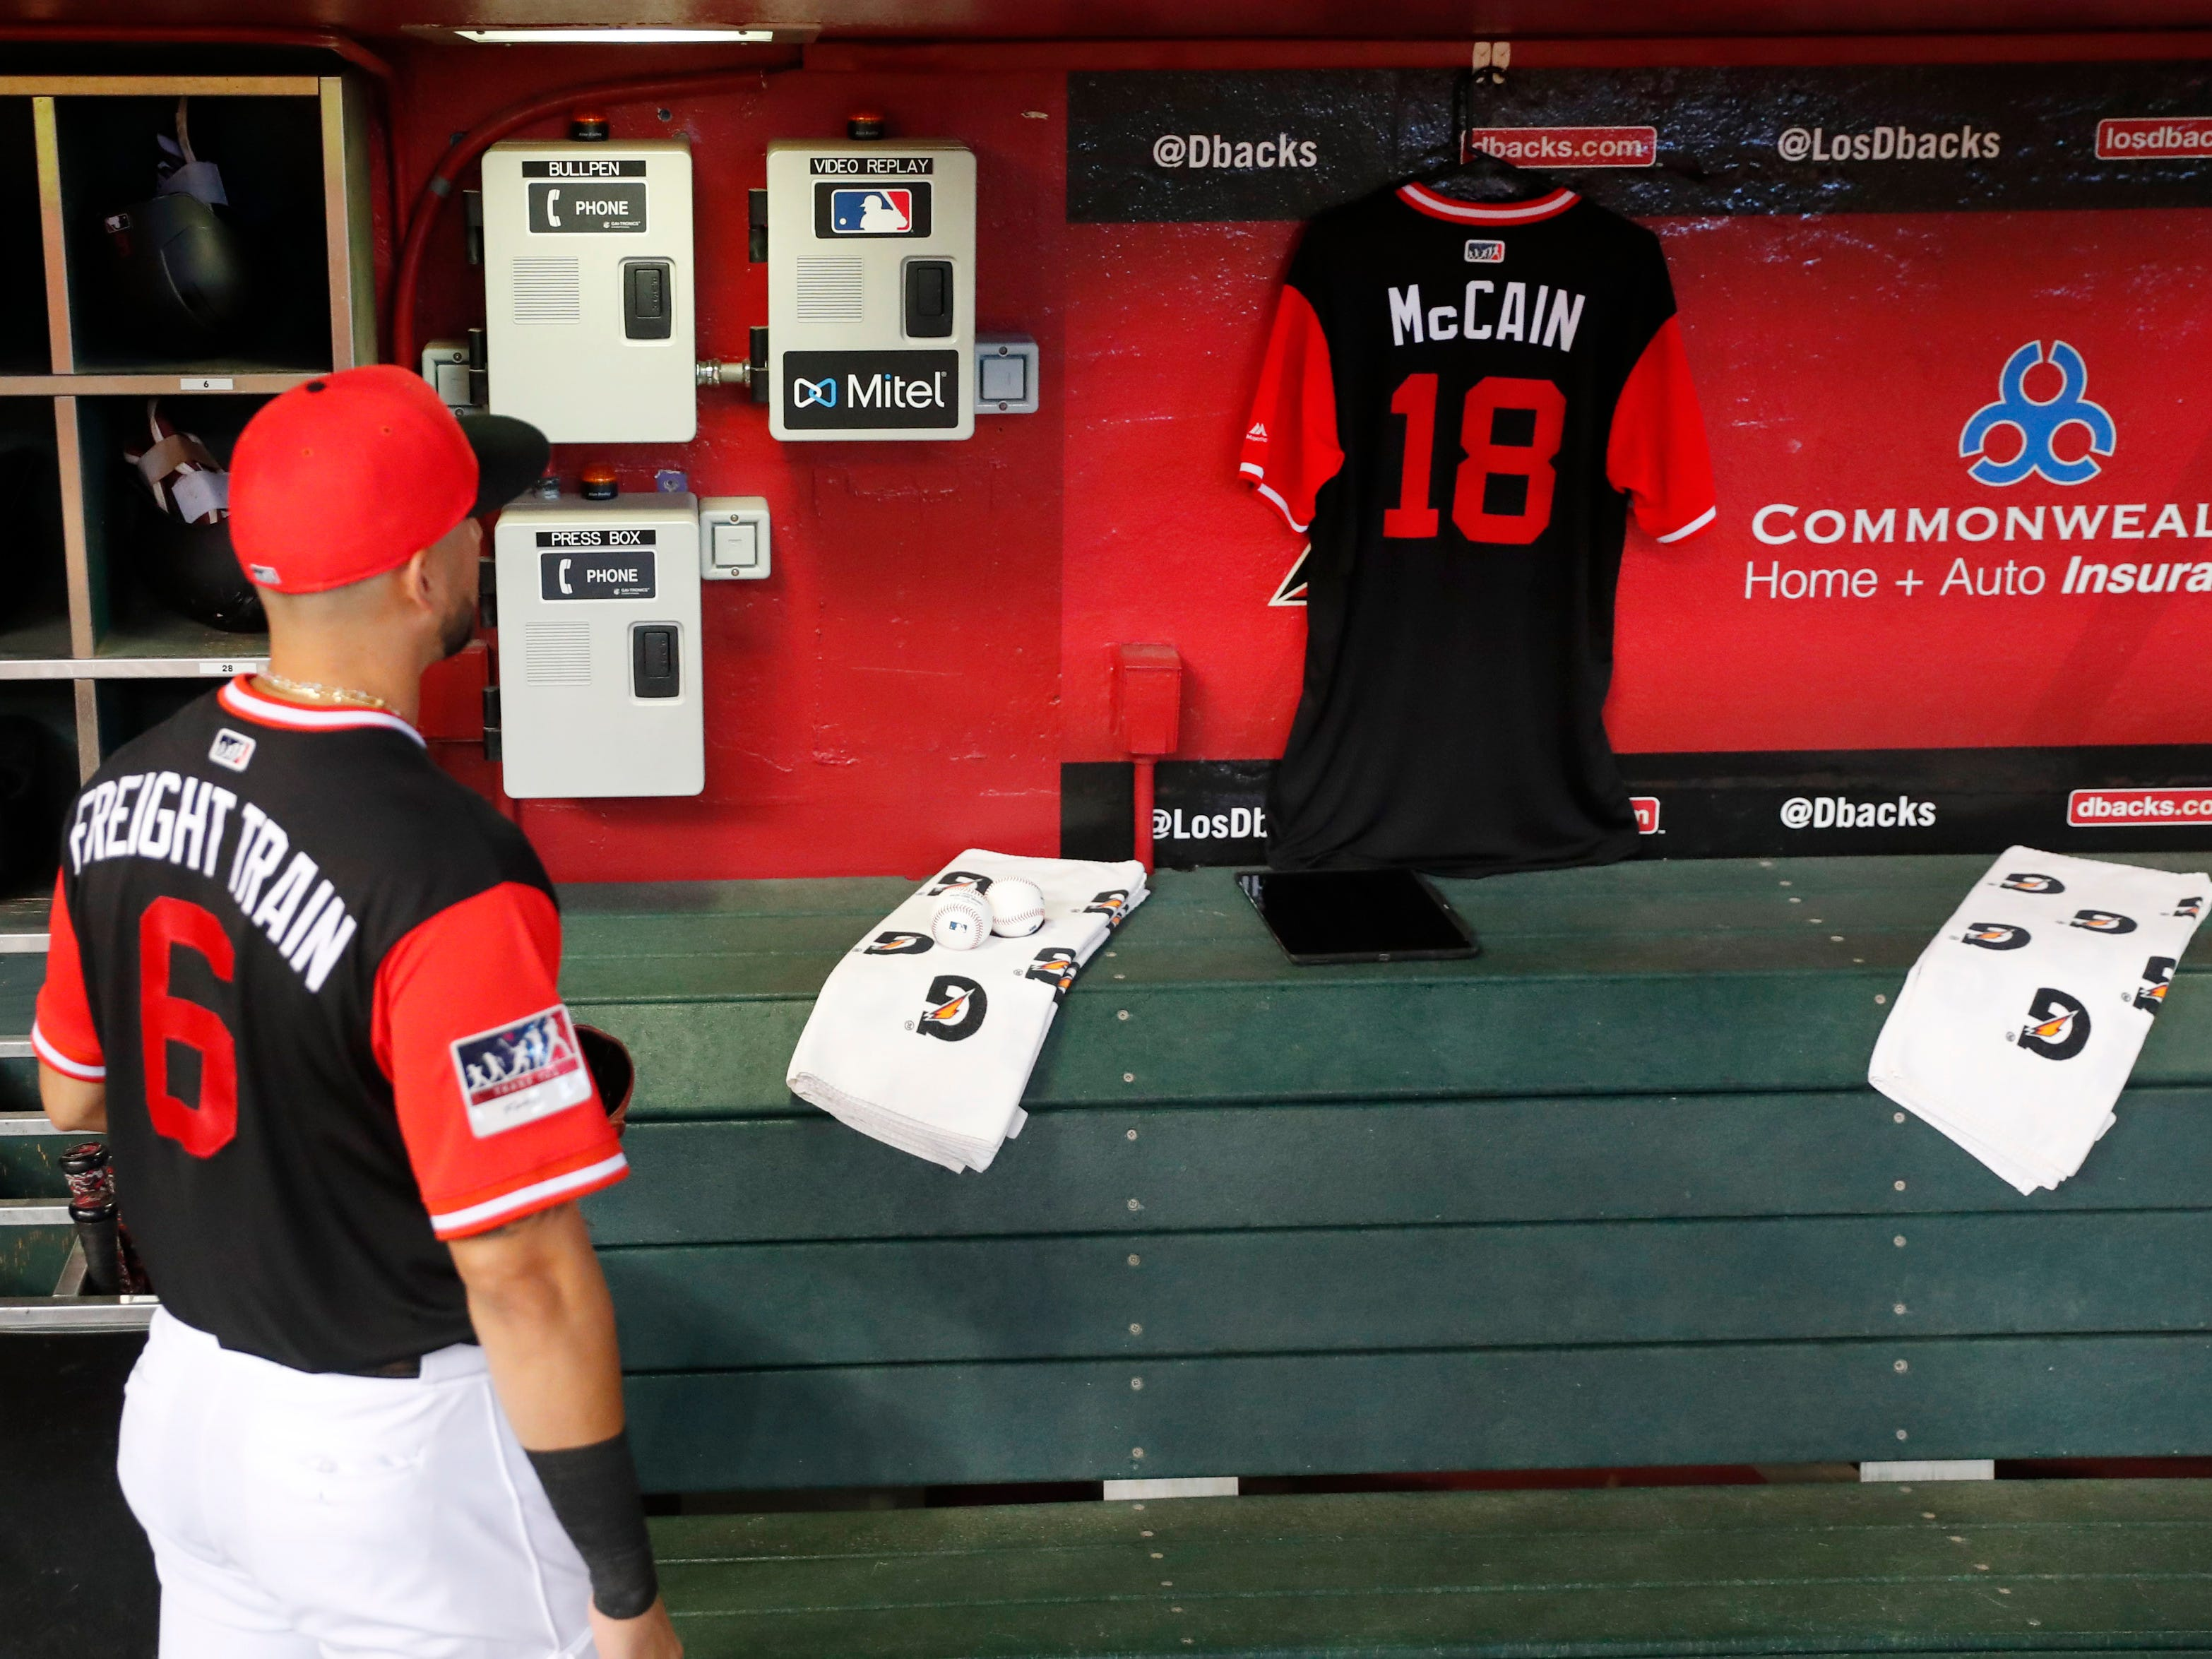 Arizona Diamondbacks right fielder David Peralta looks at a jersey hanging in the dugout for Sen. John McCain before playing against the Seattle Mariners at Chase Field in Phoenix, Ariz. August 26. 2018. The six-term Arizona senator died Saturday at age 81.